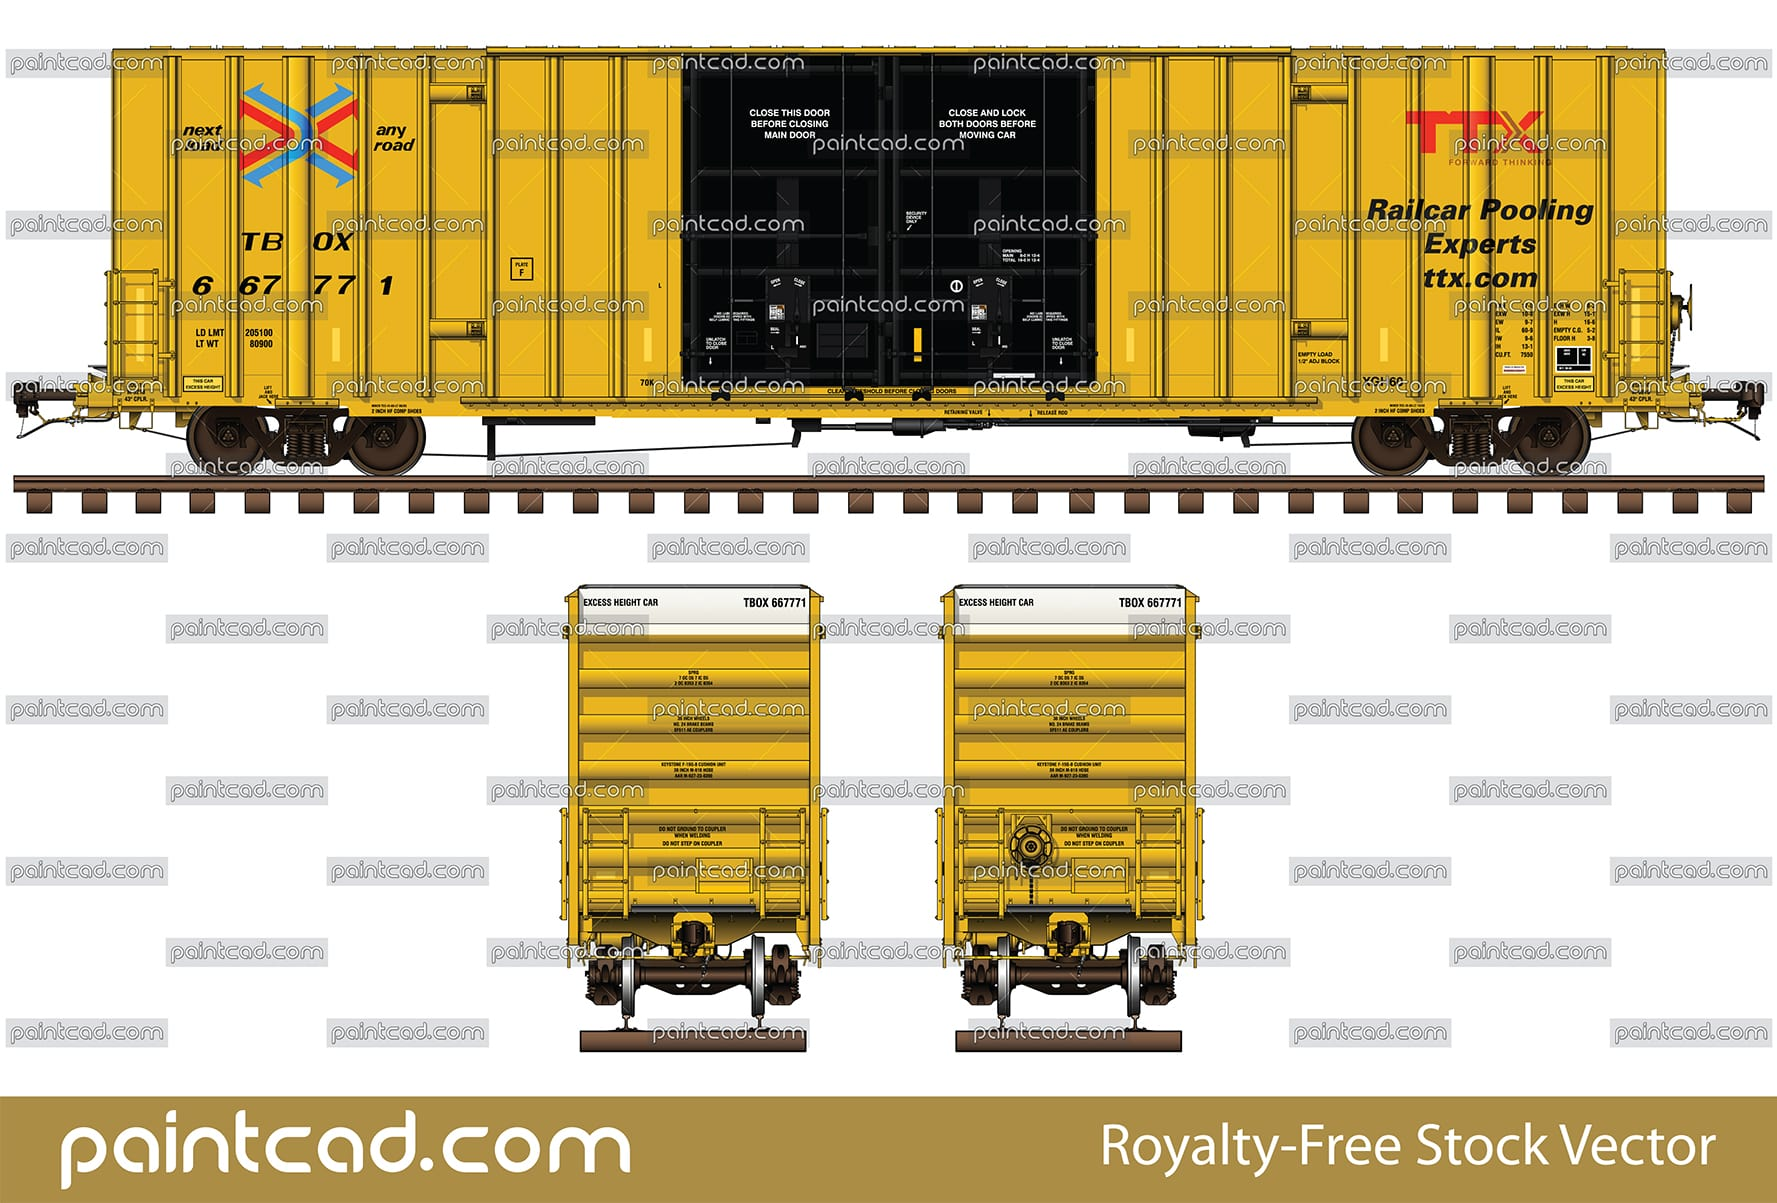 Gunderson boxcar 60-foot in yellow livery of TTX Company - vector illustration